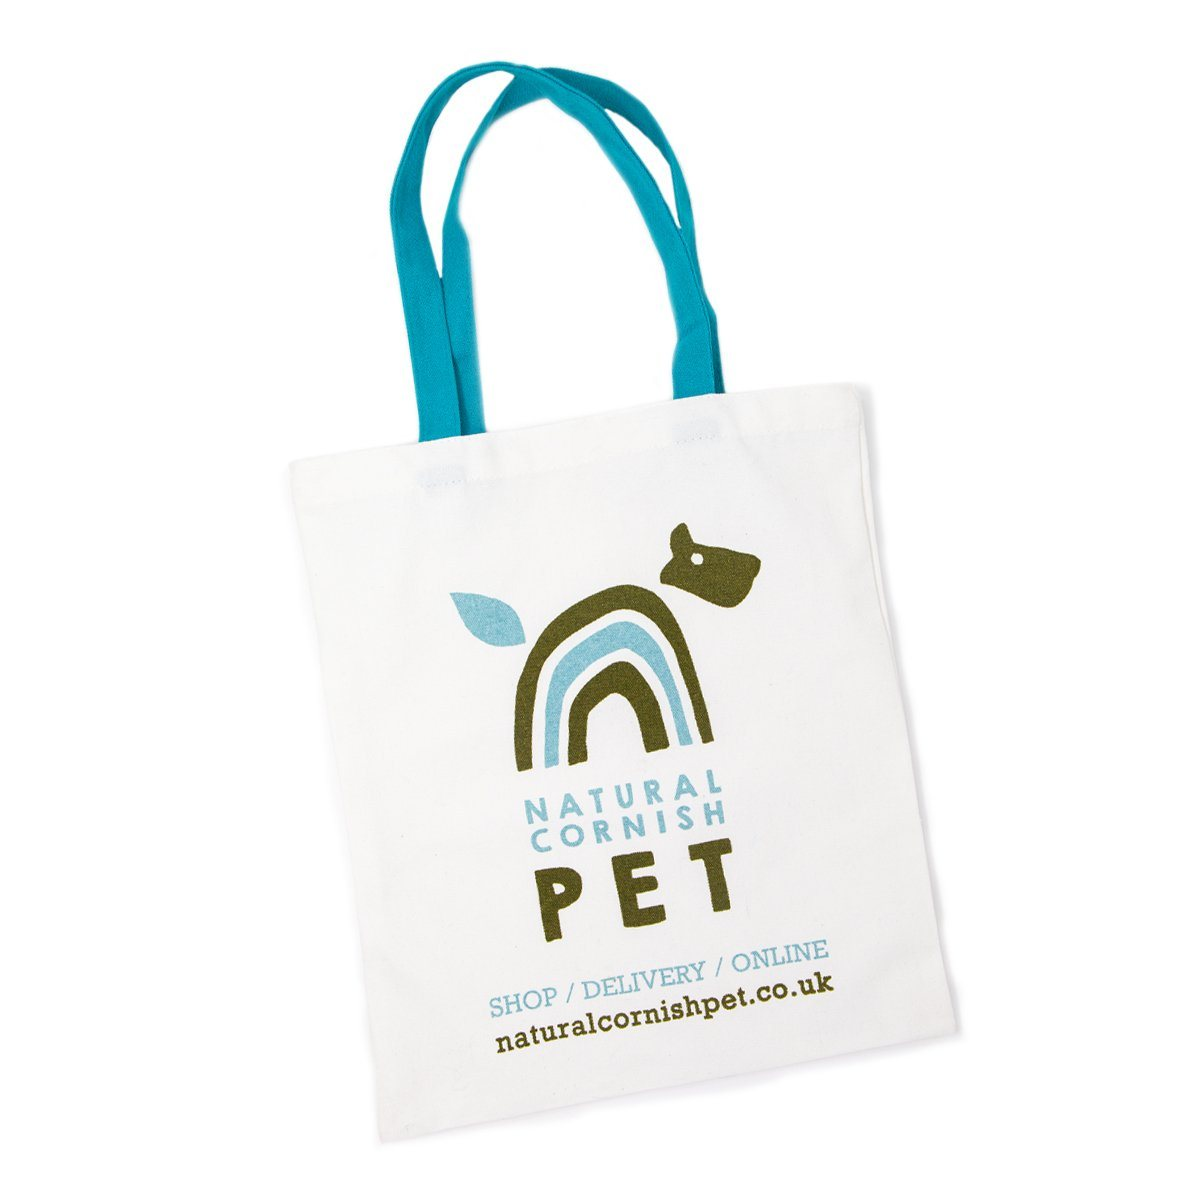 Natural Cornish Pet Shopper Bag Bag Natural Cornish Pet